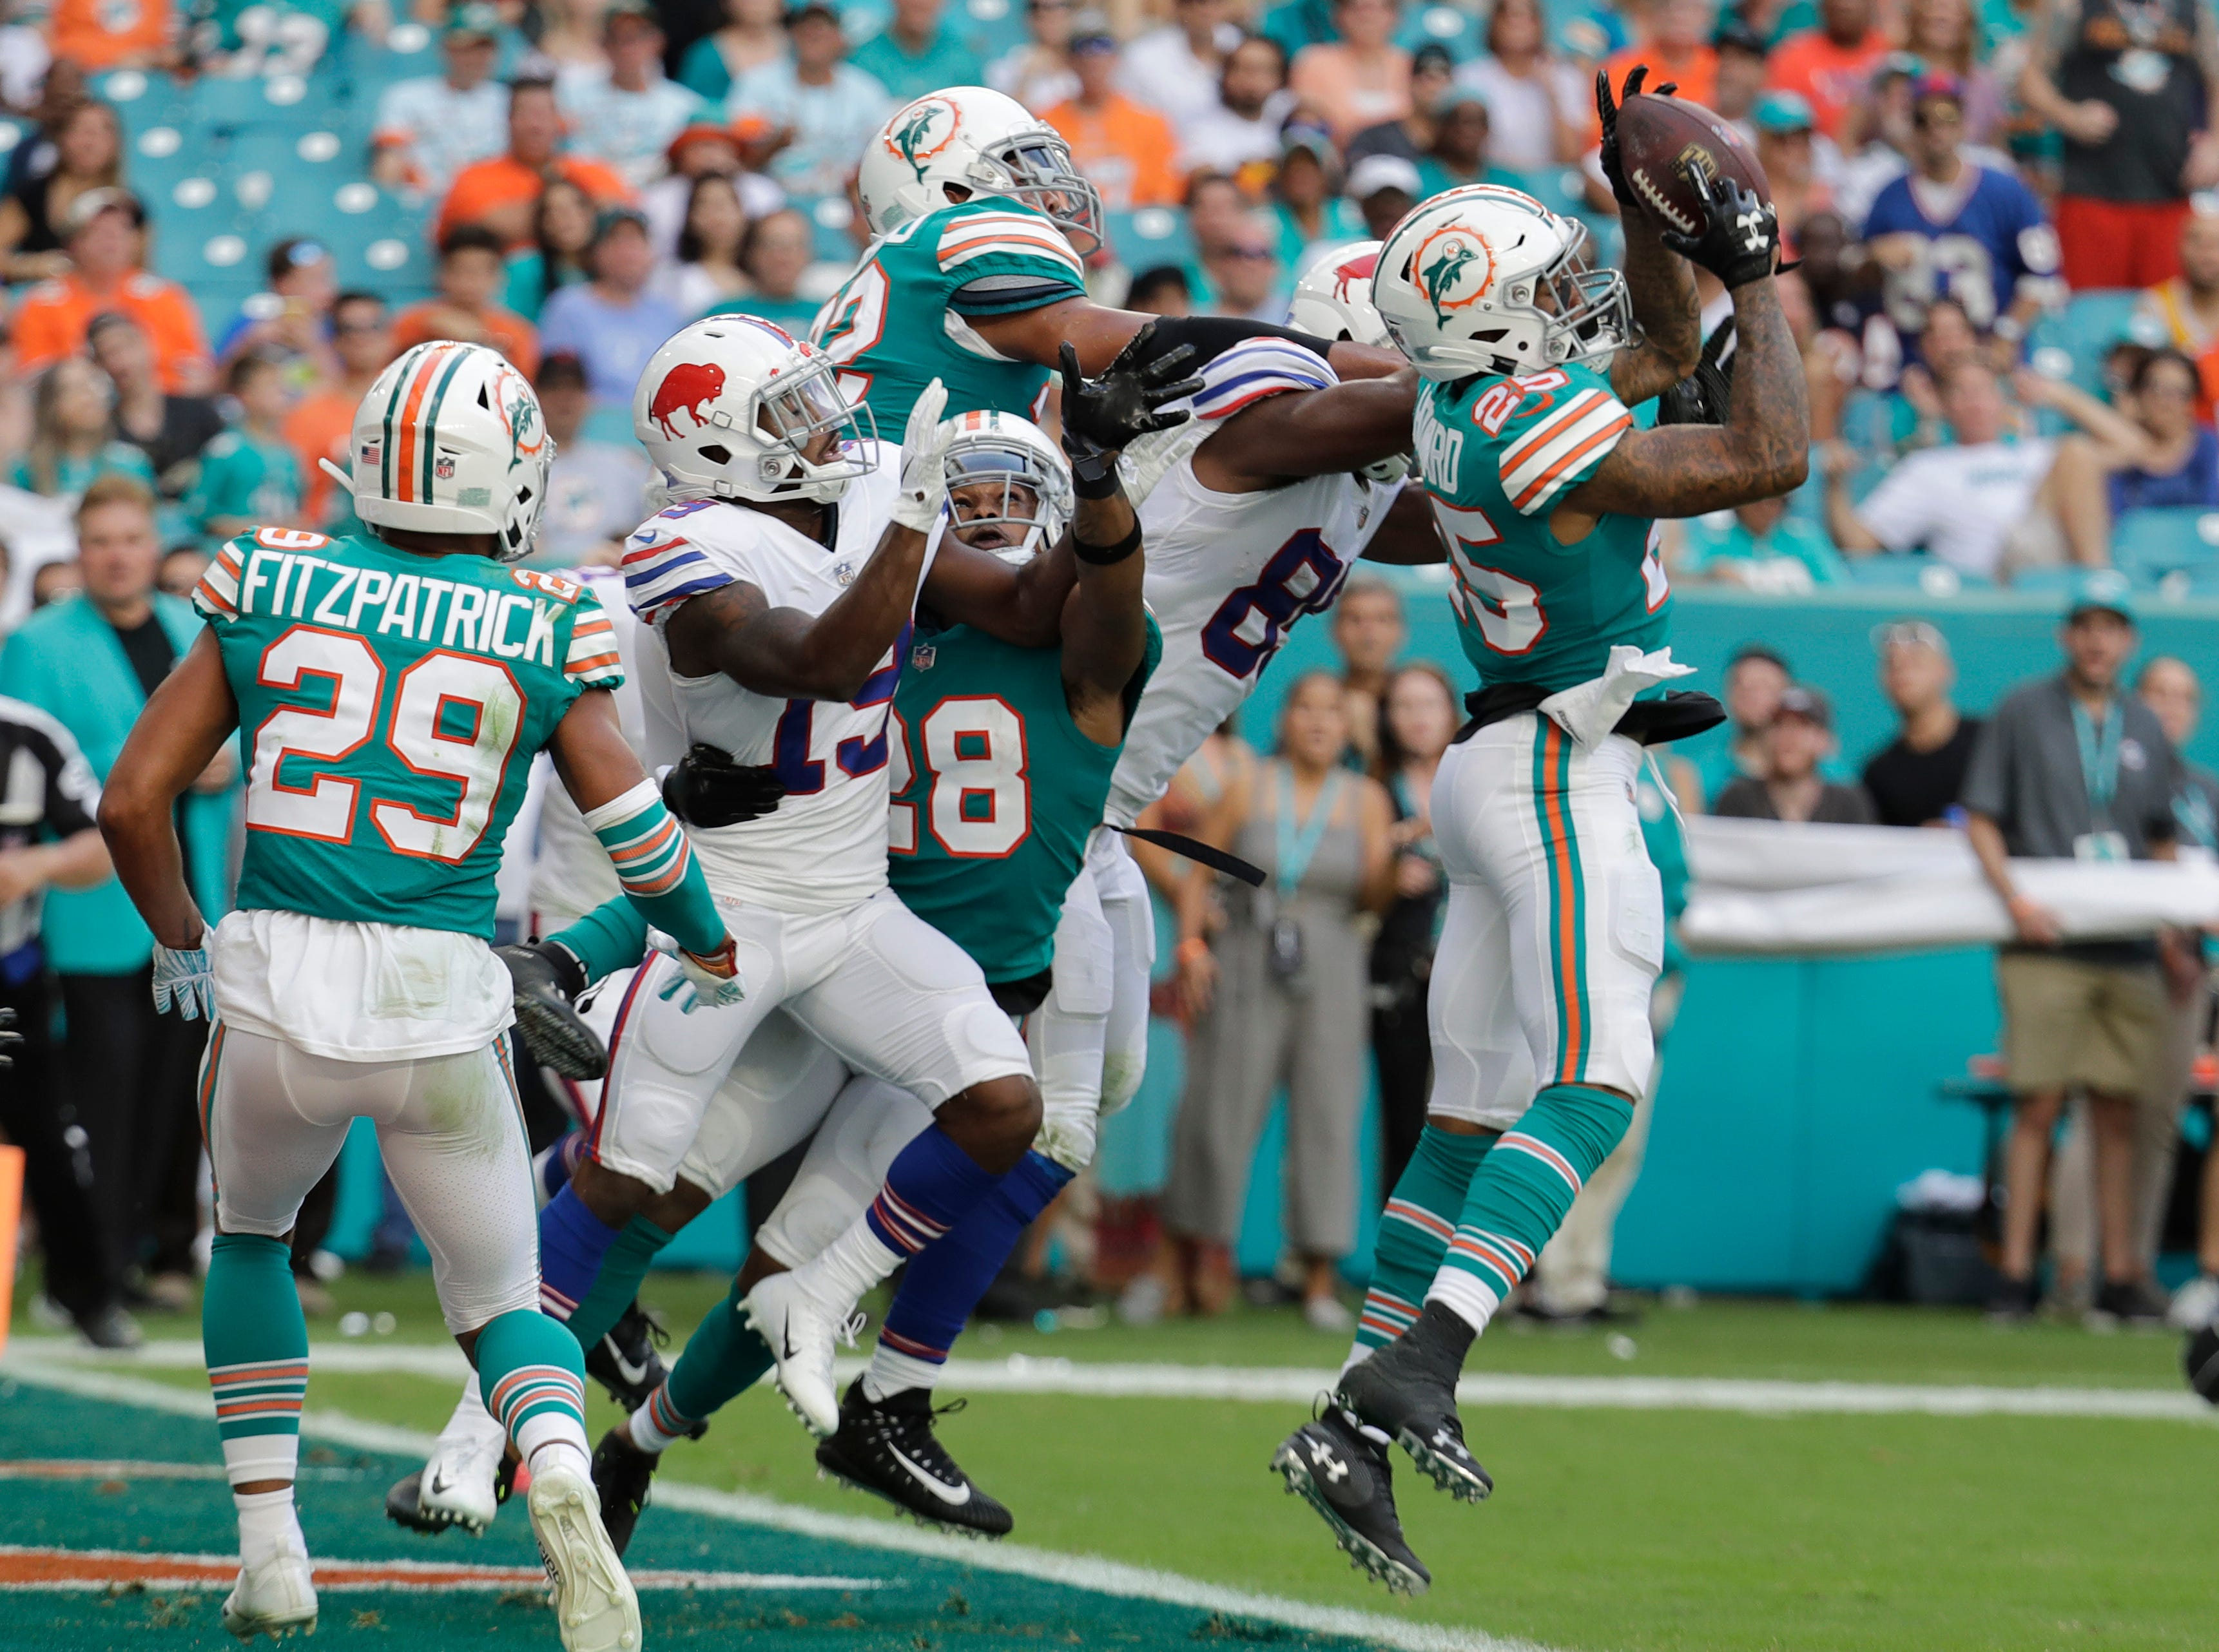 Miami Dolphins cornerback Xavien Howard (25) intercepts a long pass in the enzone, during the first half of an NFL football game against the Buffalo Bills, Sunday, Dec. 2, 2018, in Miami Gardens, Fla (AP Photo/Lynne Sladky)